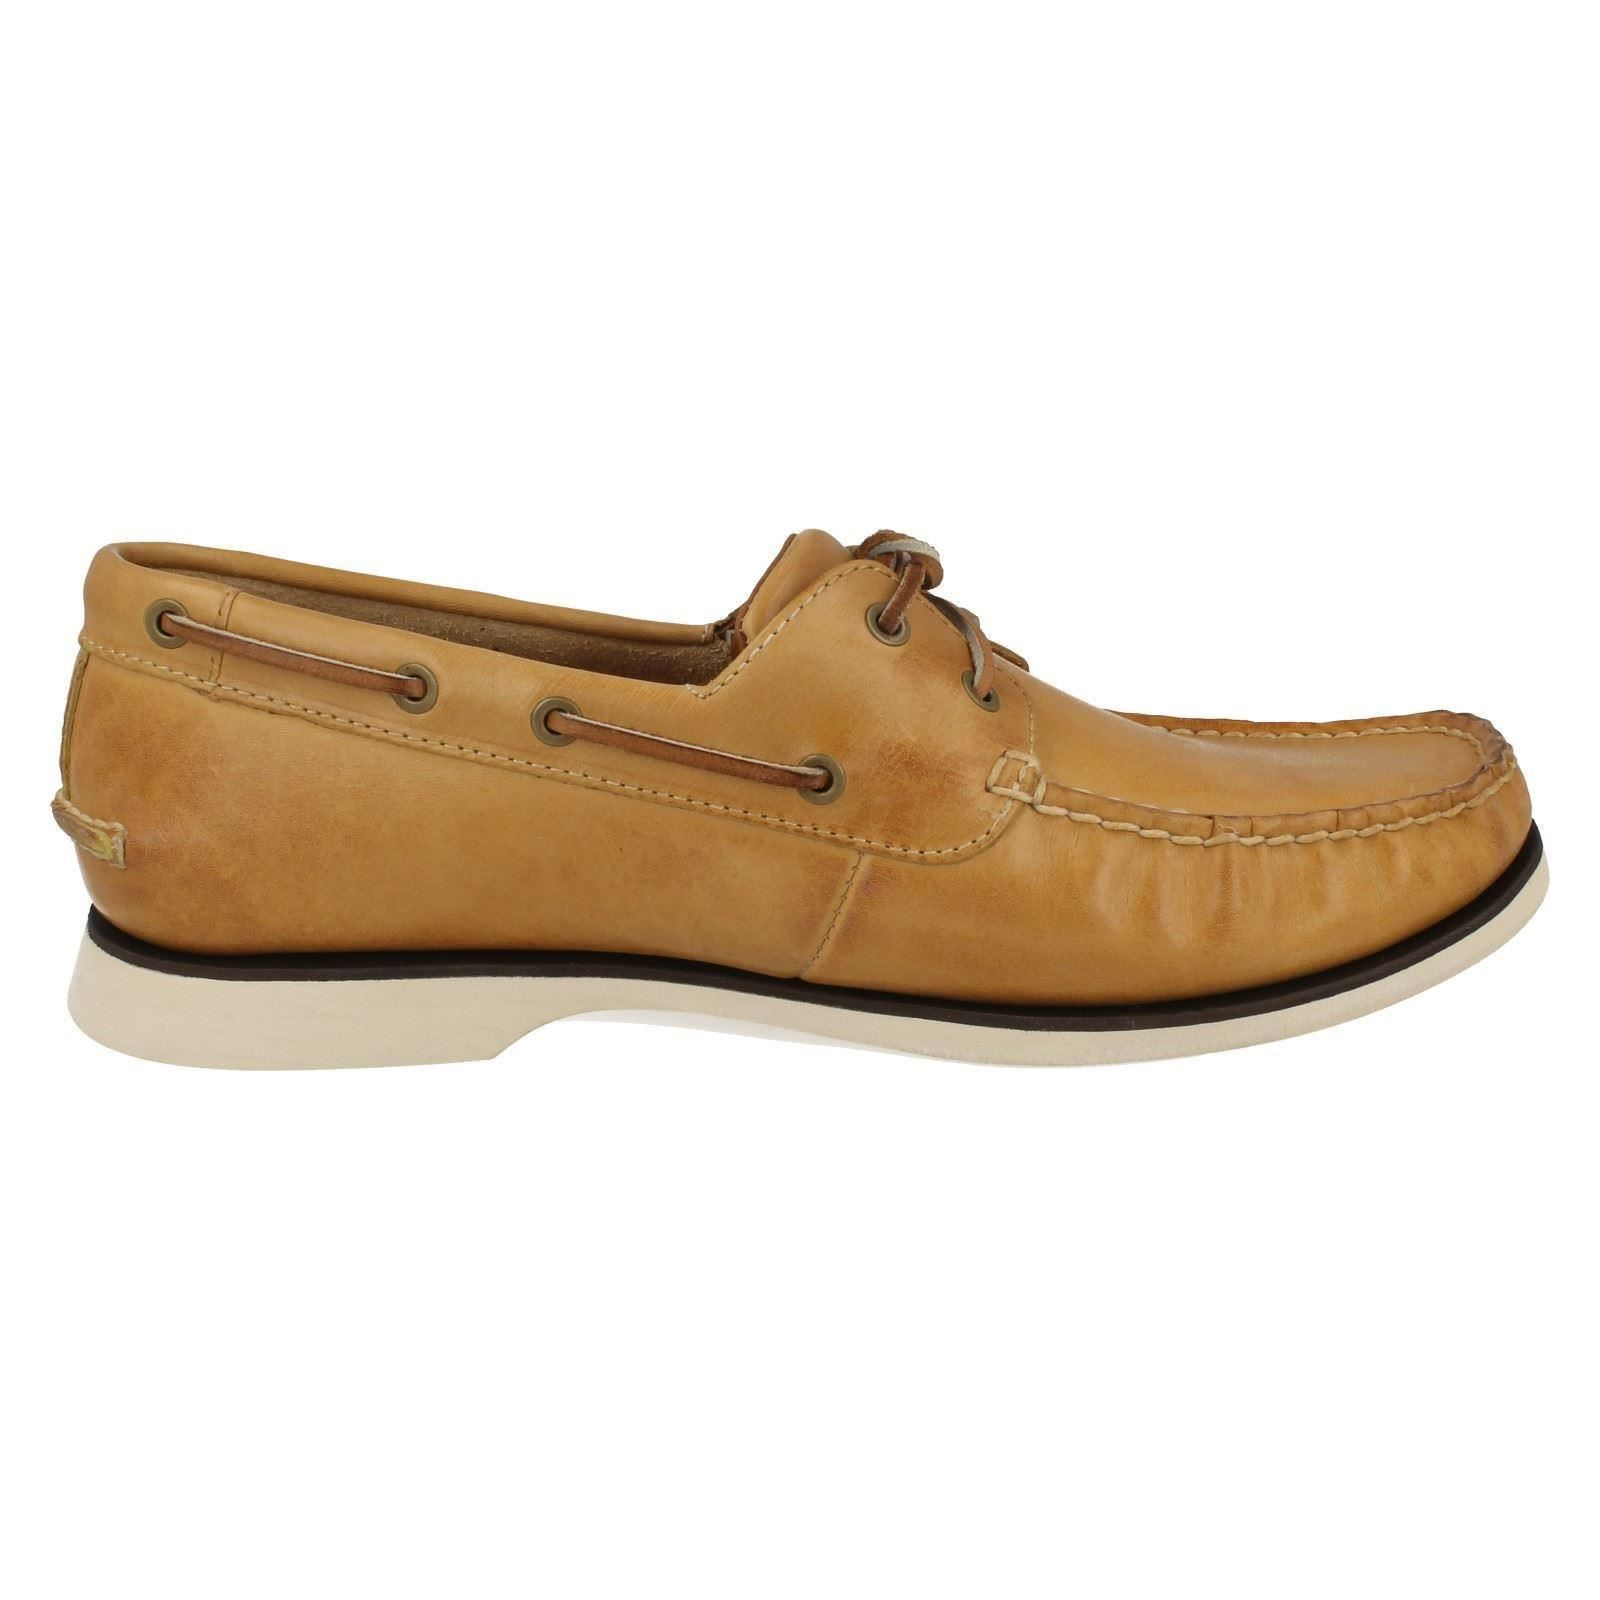 Clarks Mens Deck Boat Shoe